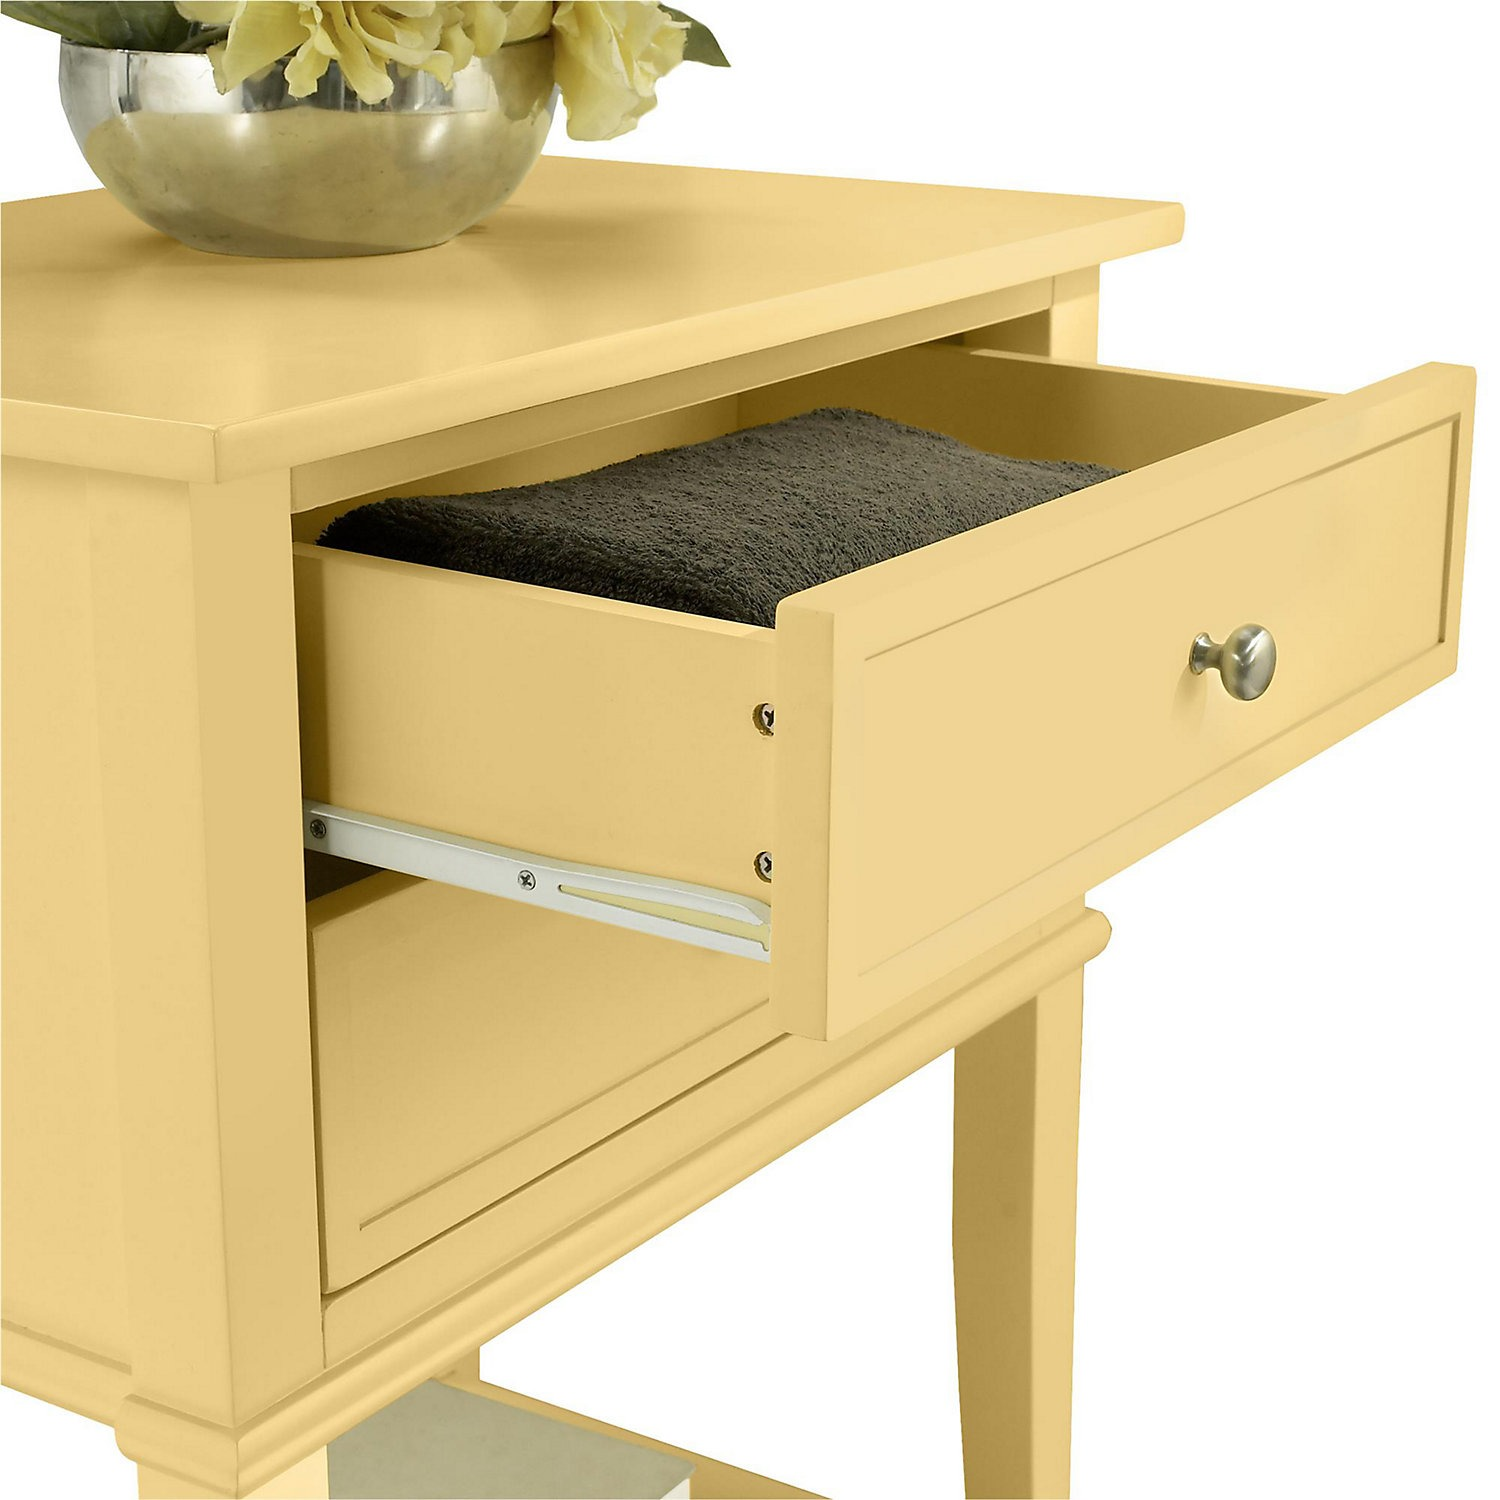 franklin yellow accent table gas grills circular glass side chest drawers christmas linen wood occasional tables bunnings storage cabinets hat stand patio furniture for small